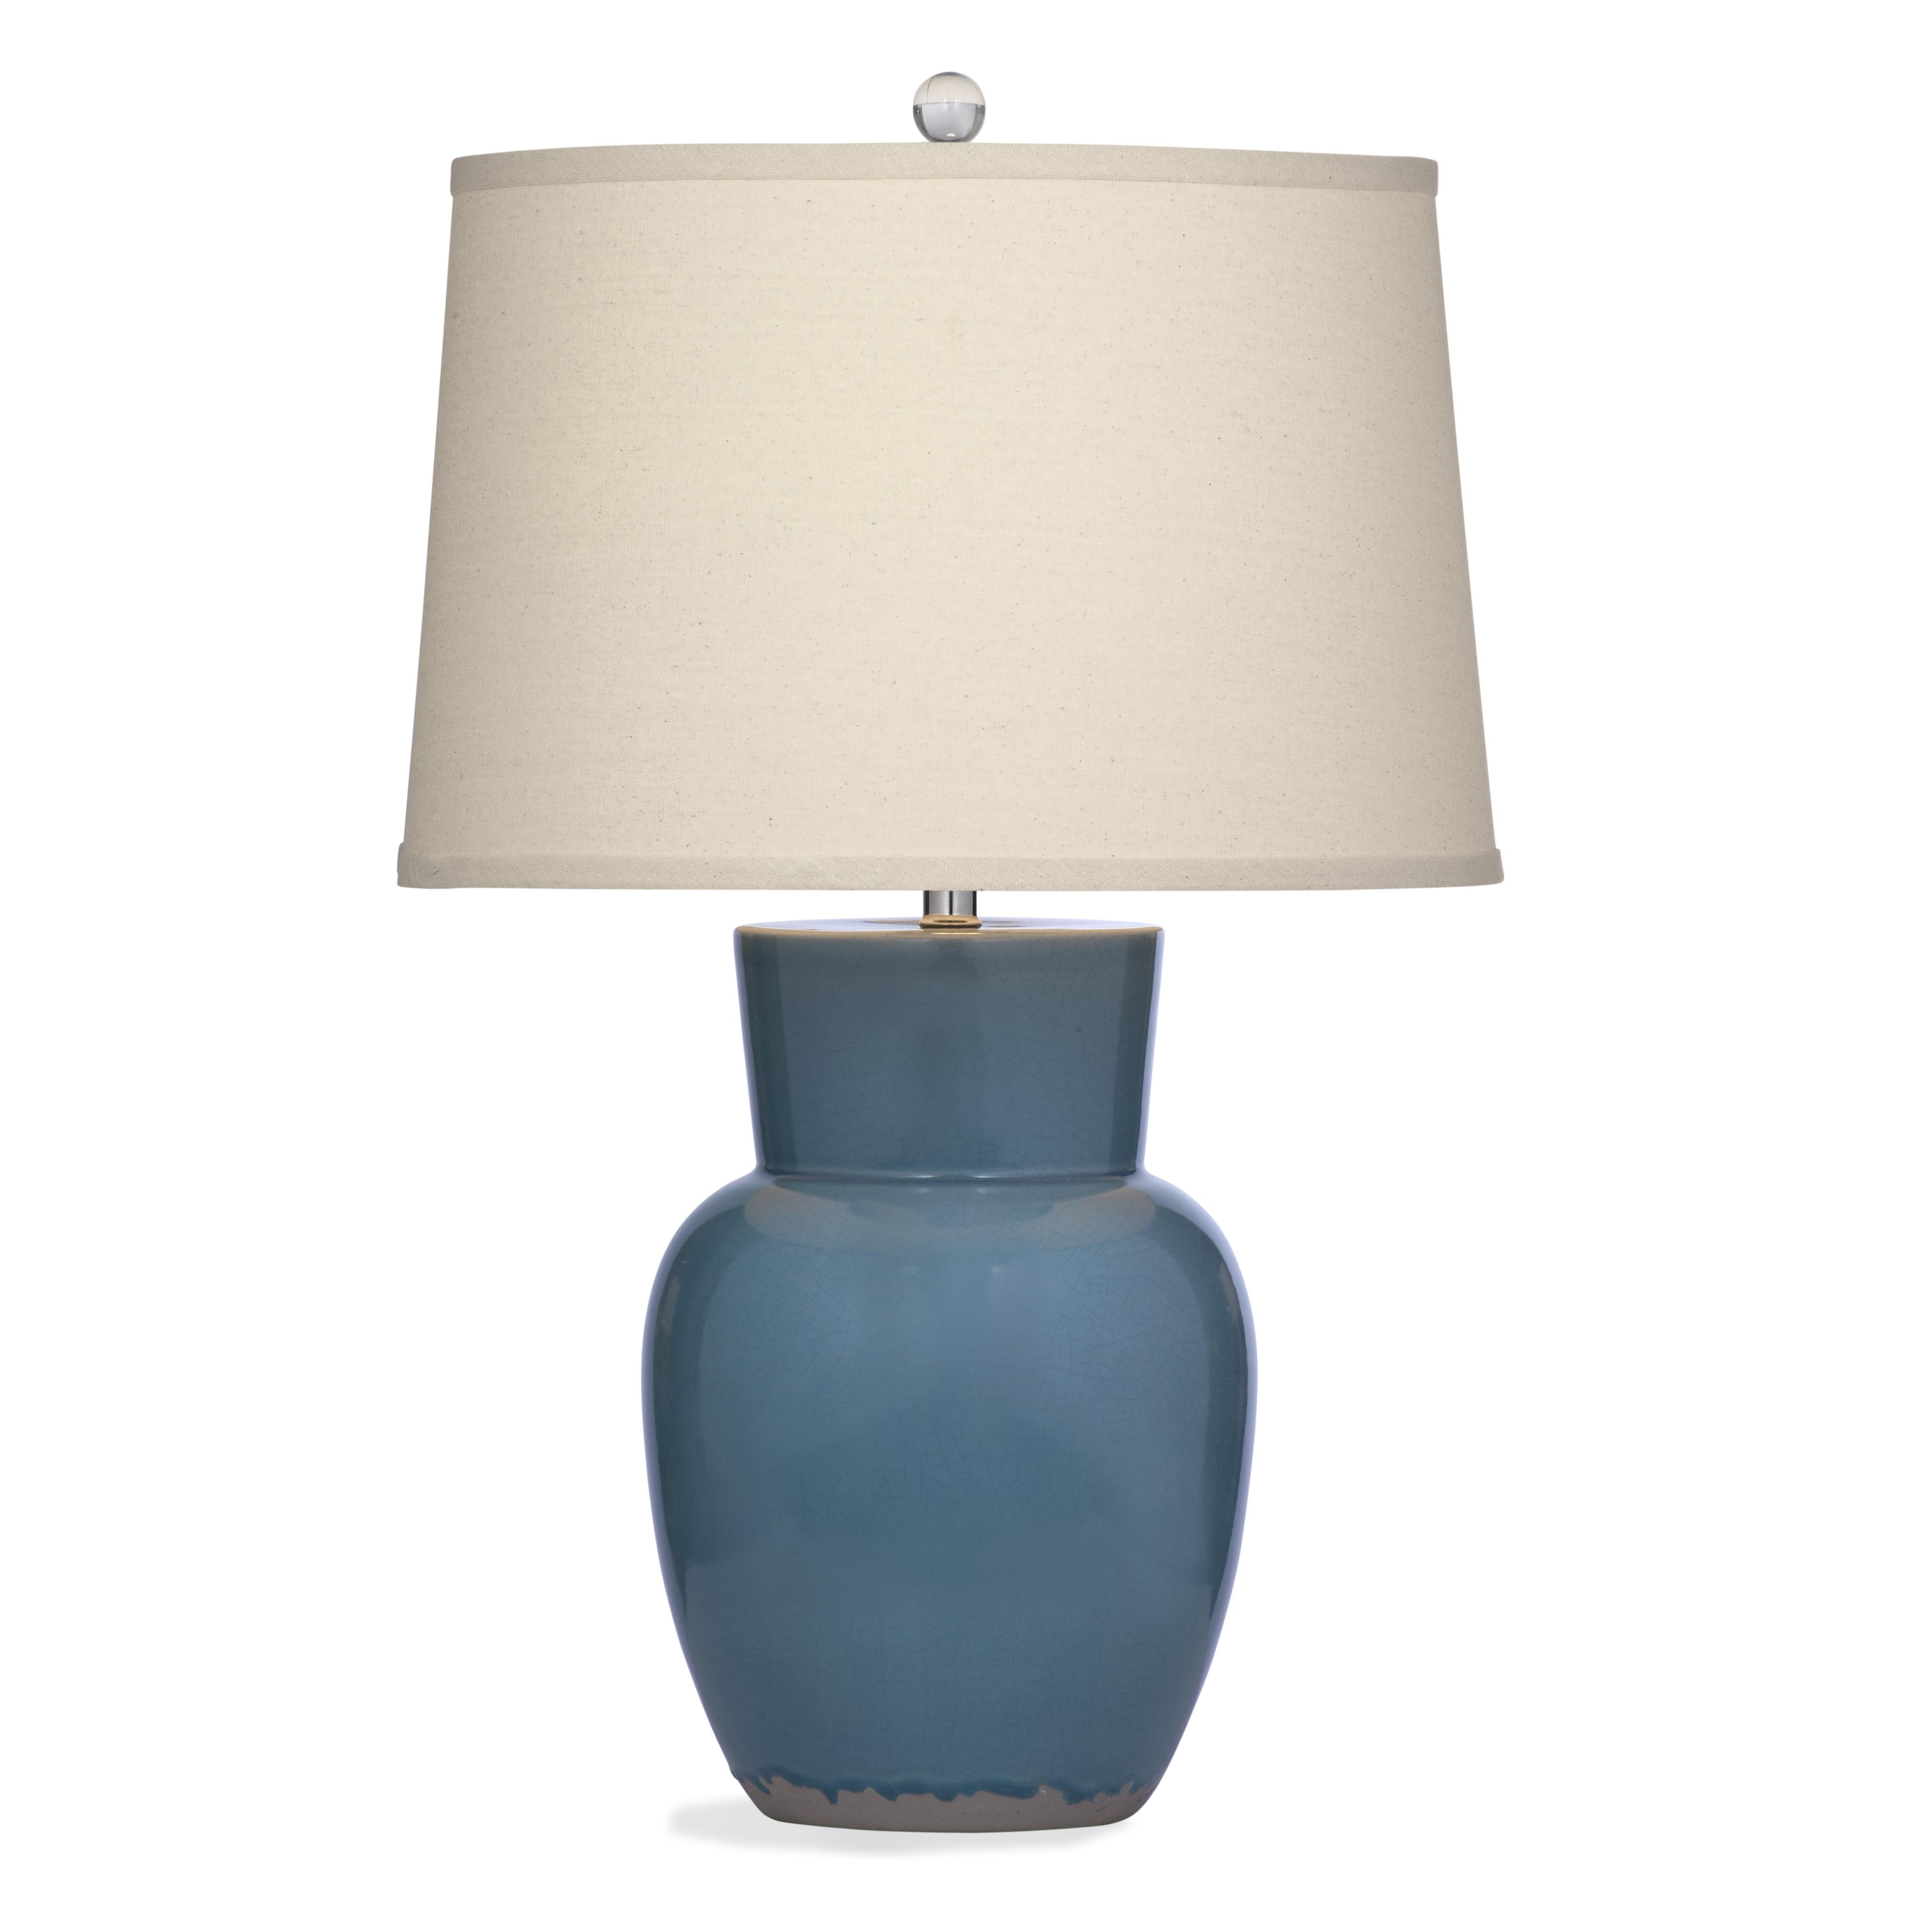 Belgian Luxe Odessa Table Lamp by Bassett Mirror at Alison Craig Home Furnishings